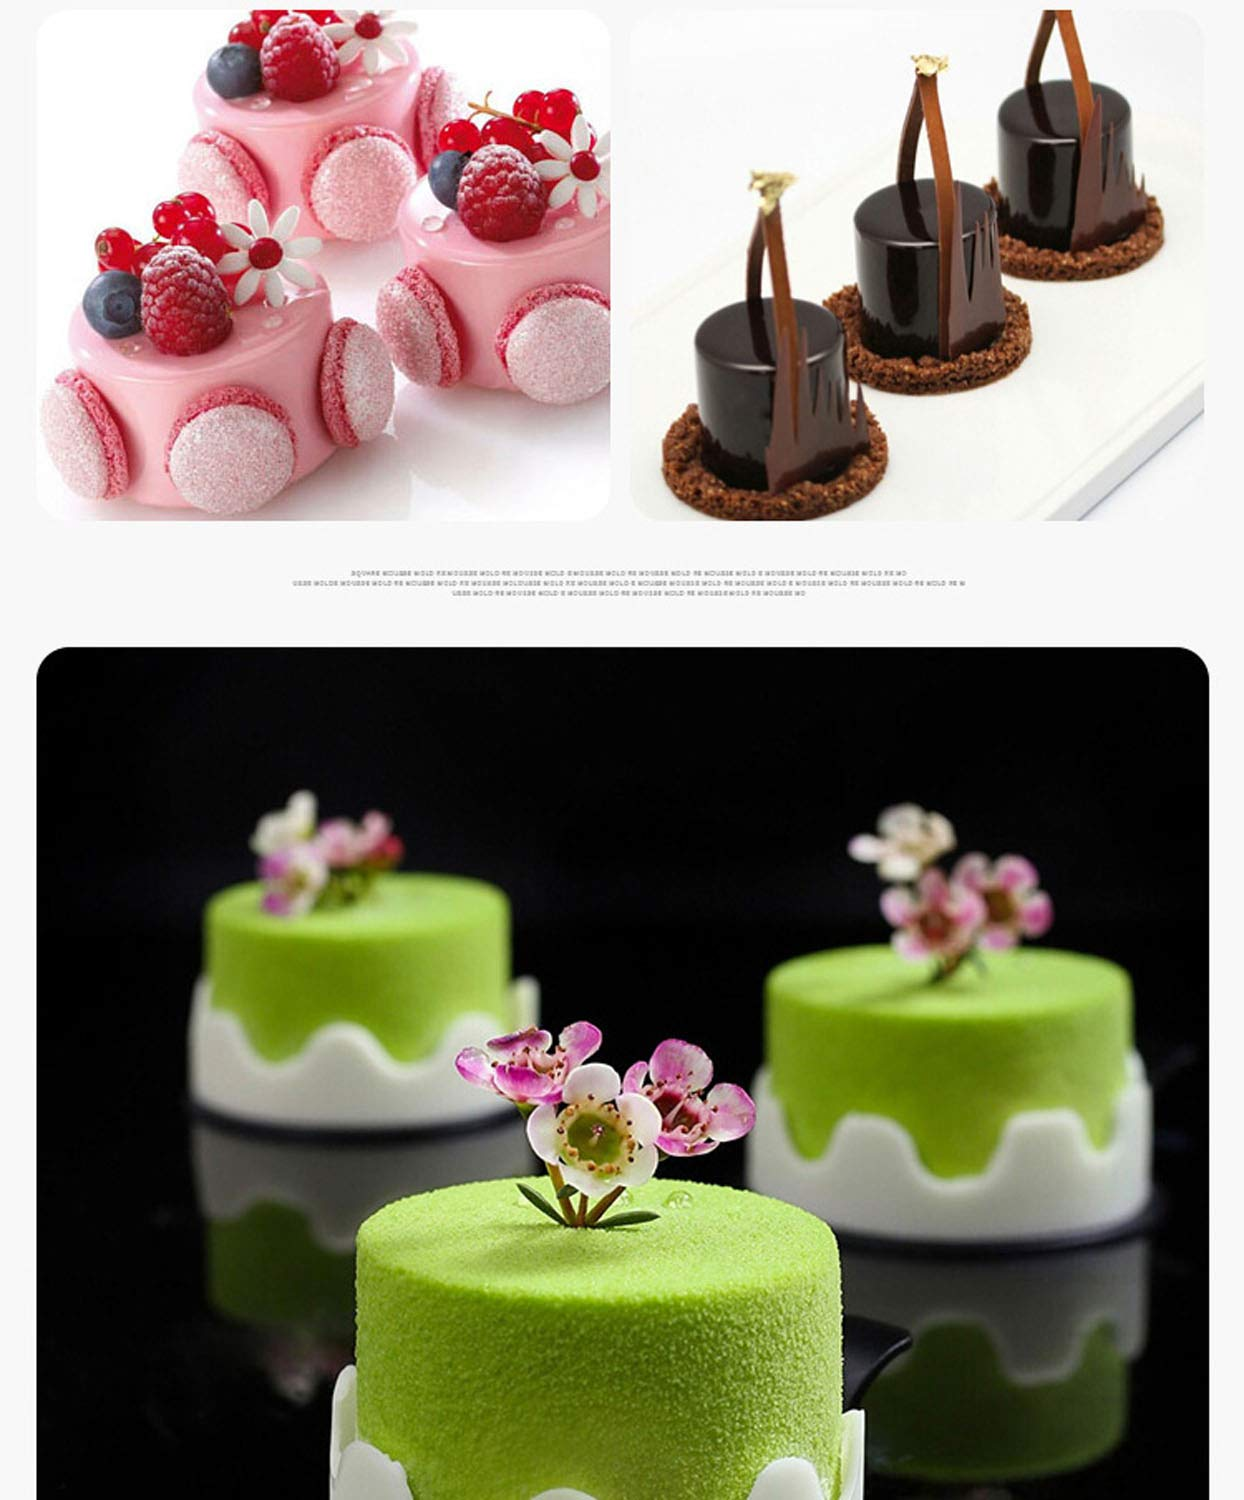 Silicone Mousse Cake Molds for Baking Brownie Chocolate Truffle Pudding Christmas Desserts,Nonstick, Easy Release, Food Grade Silicone,BPA Free,Set of 1 (3D Tall Cylinder) by JOHO (Image #5)